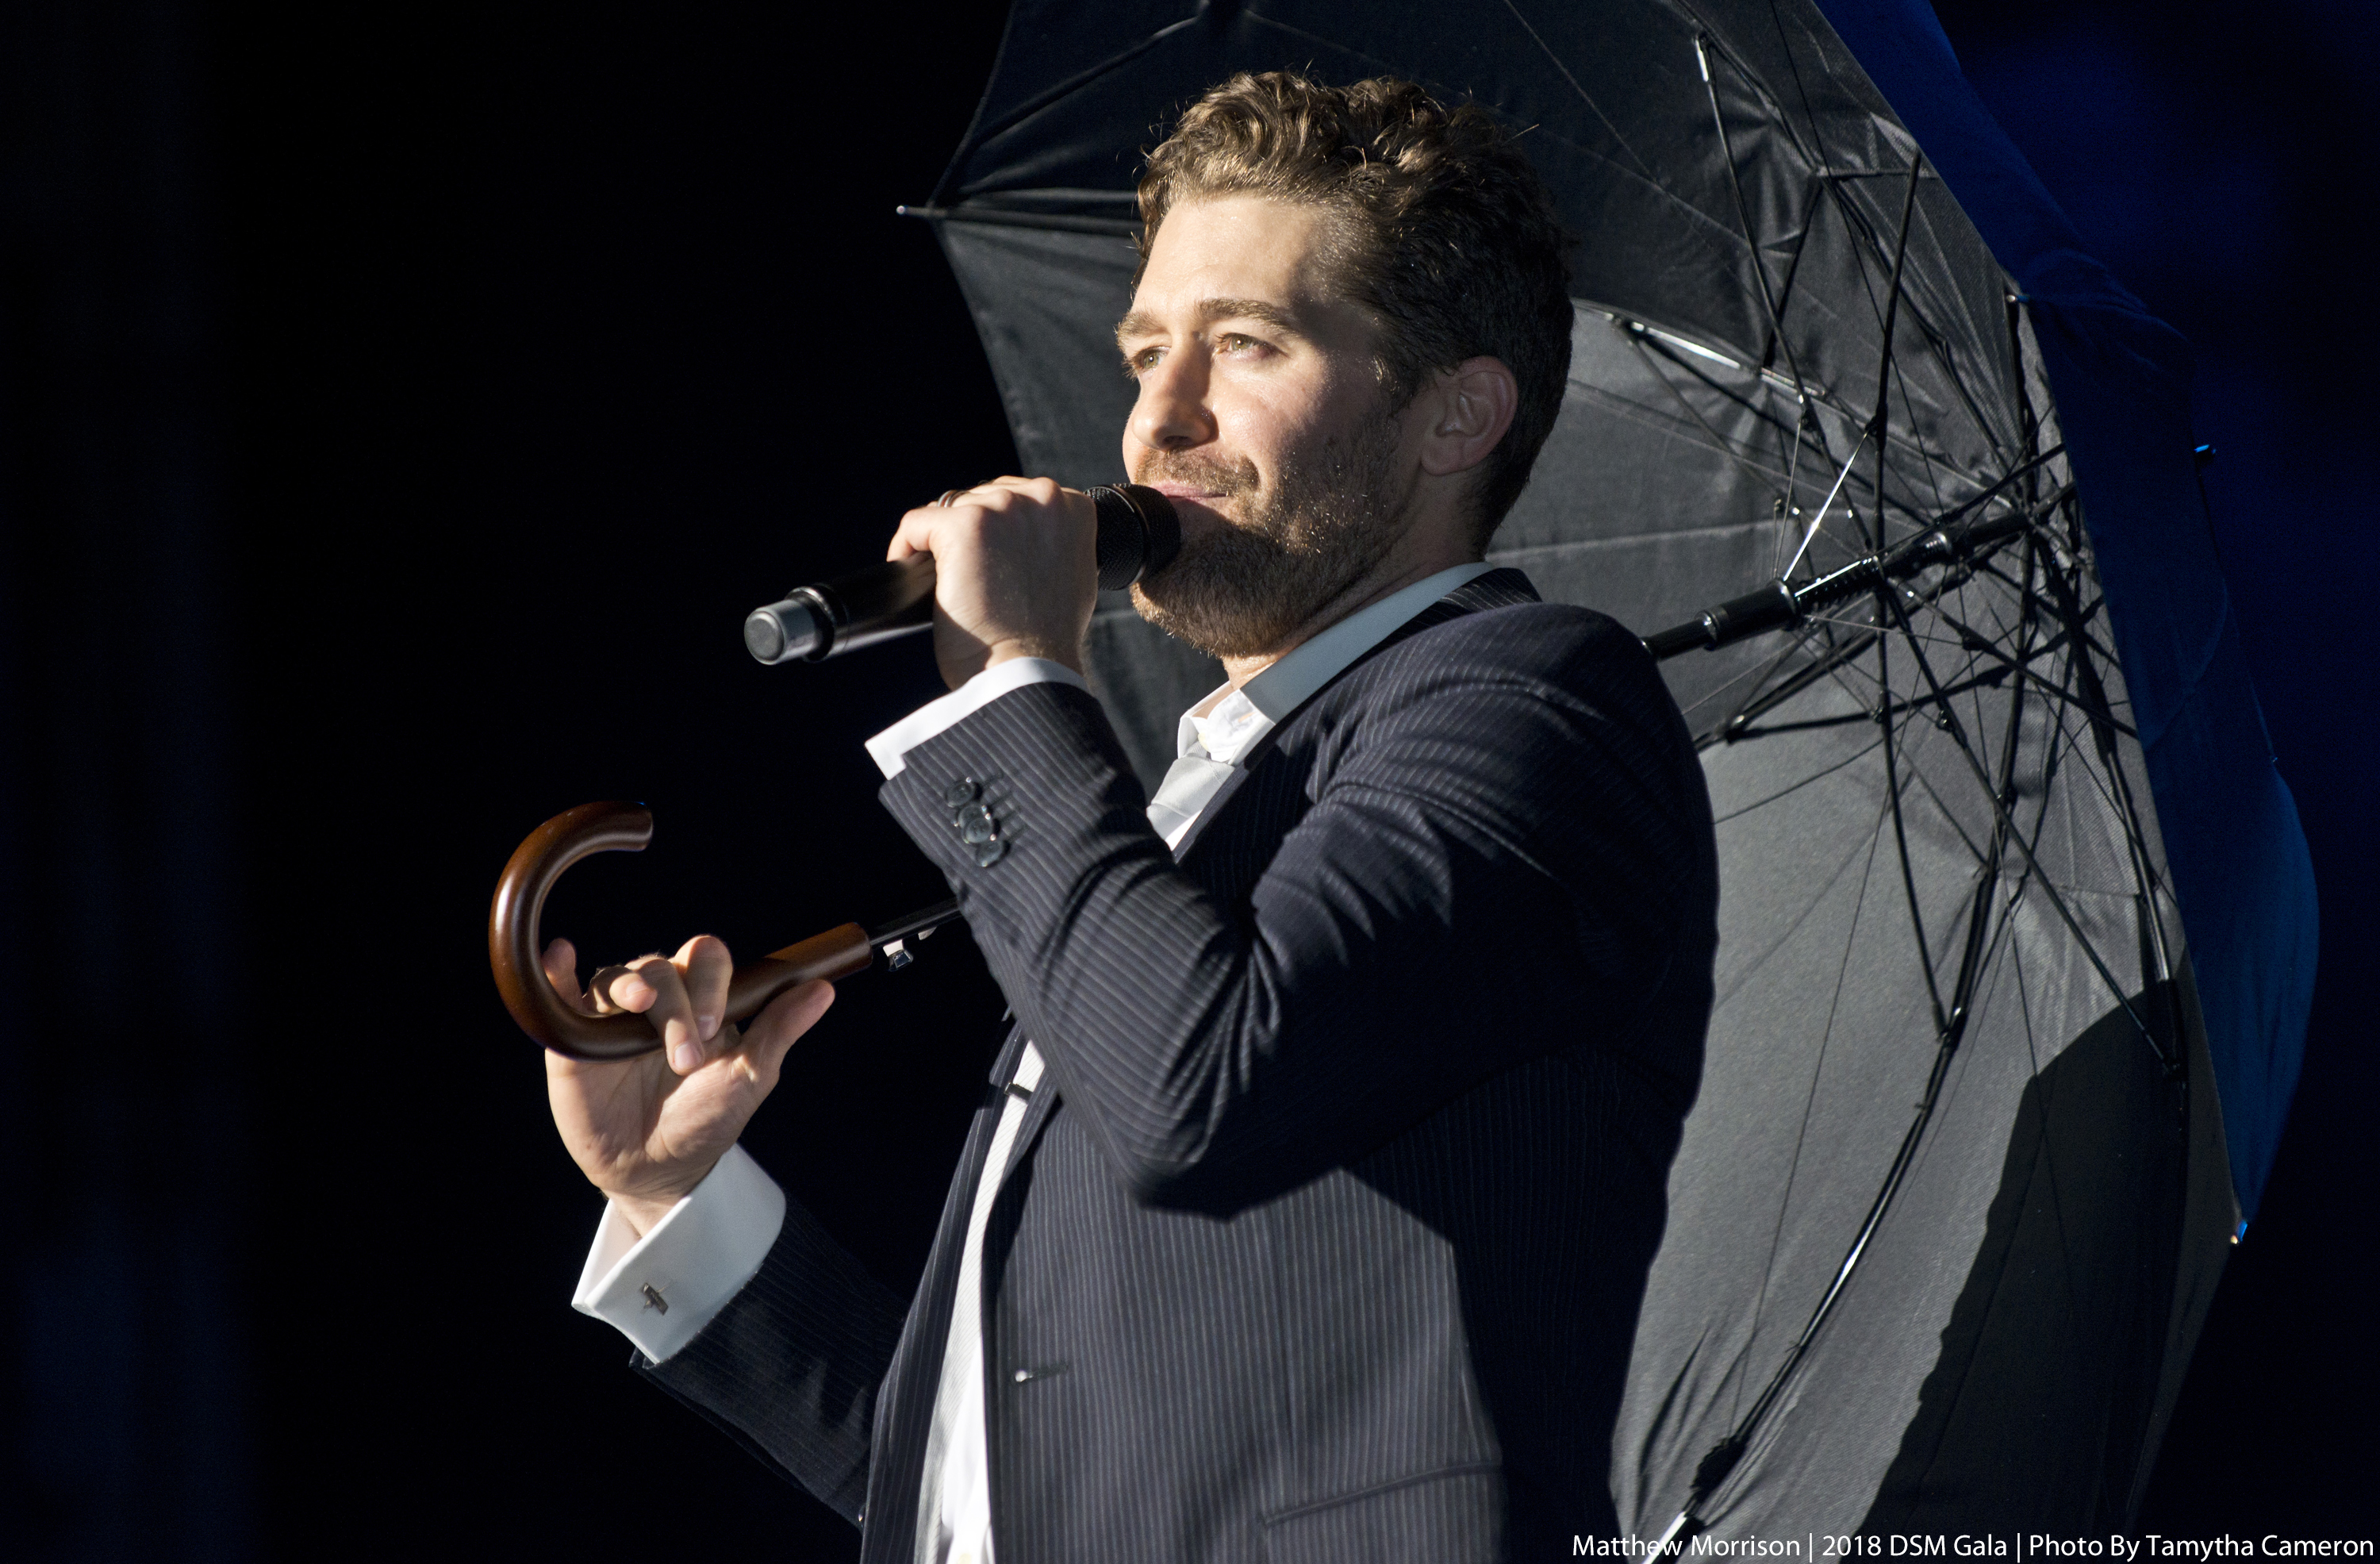 Matthew Morrison performing at 2018 DSM Gala